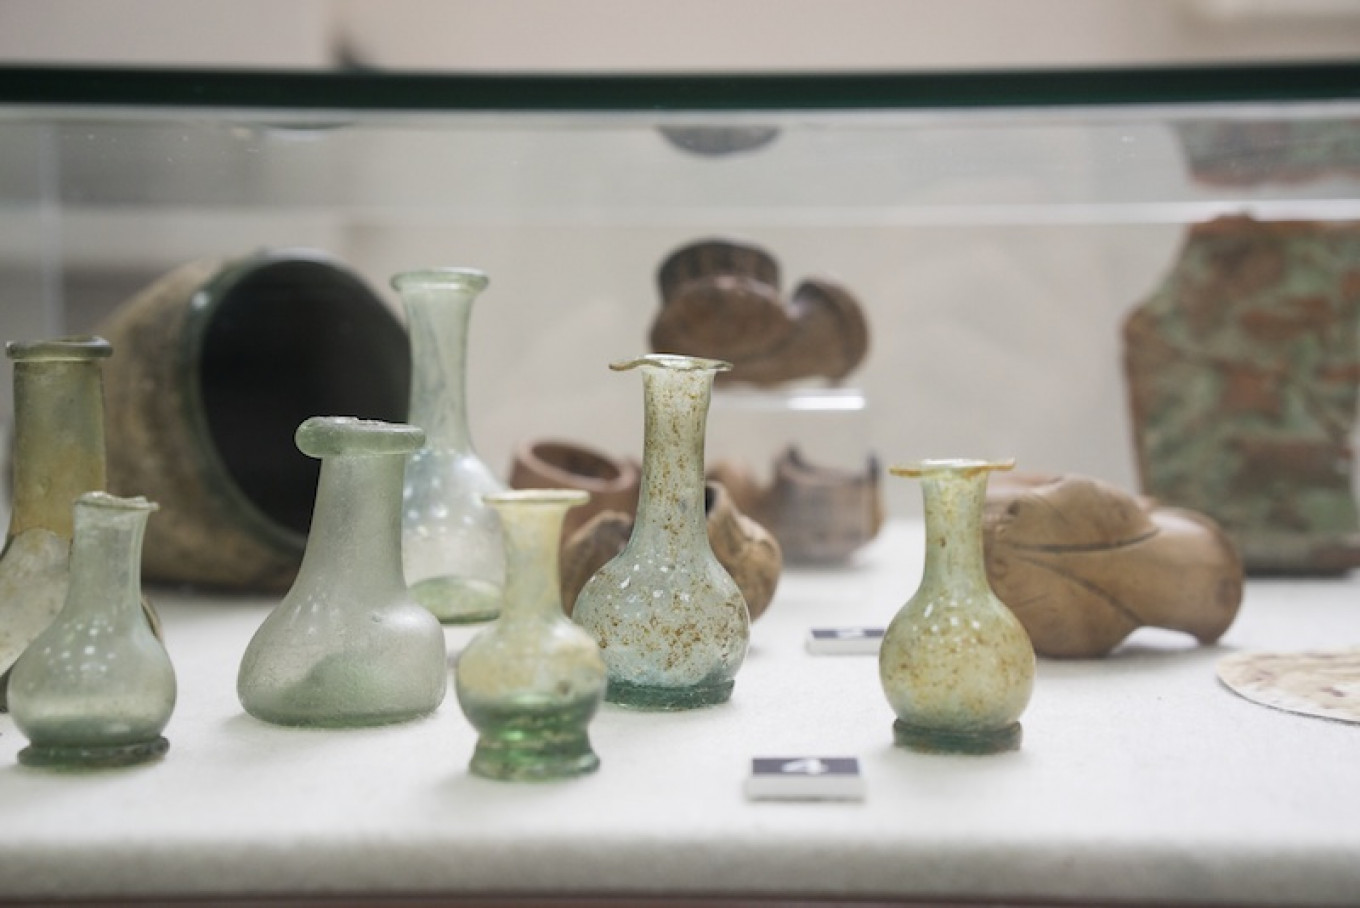 18th-century vases and 16th-century ceramics shown as part of an exhibition at the Museum of Moscow.				 				Albina Shaimuratova